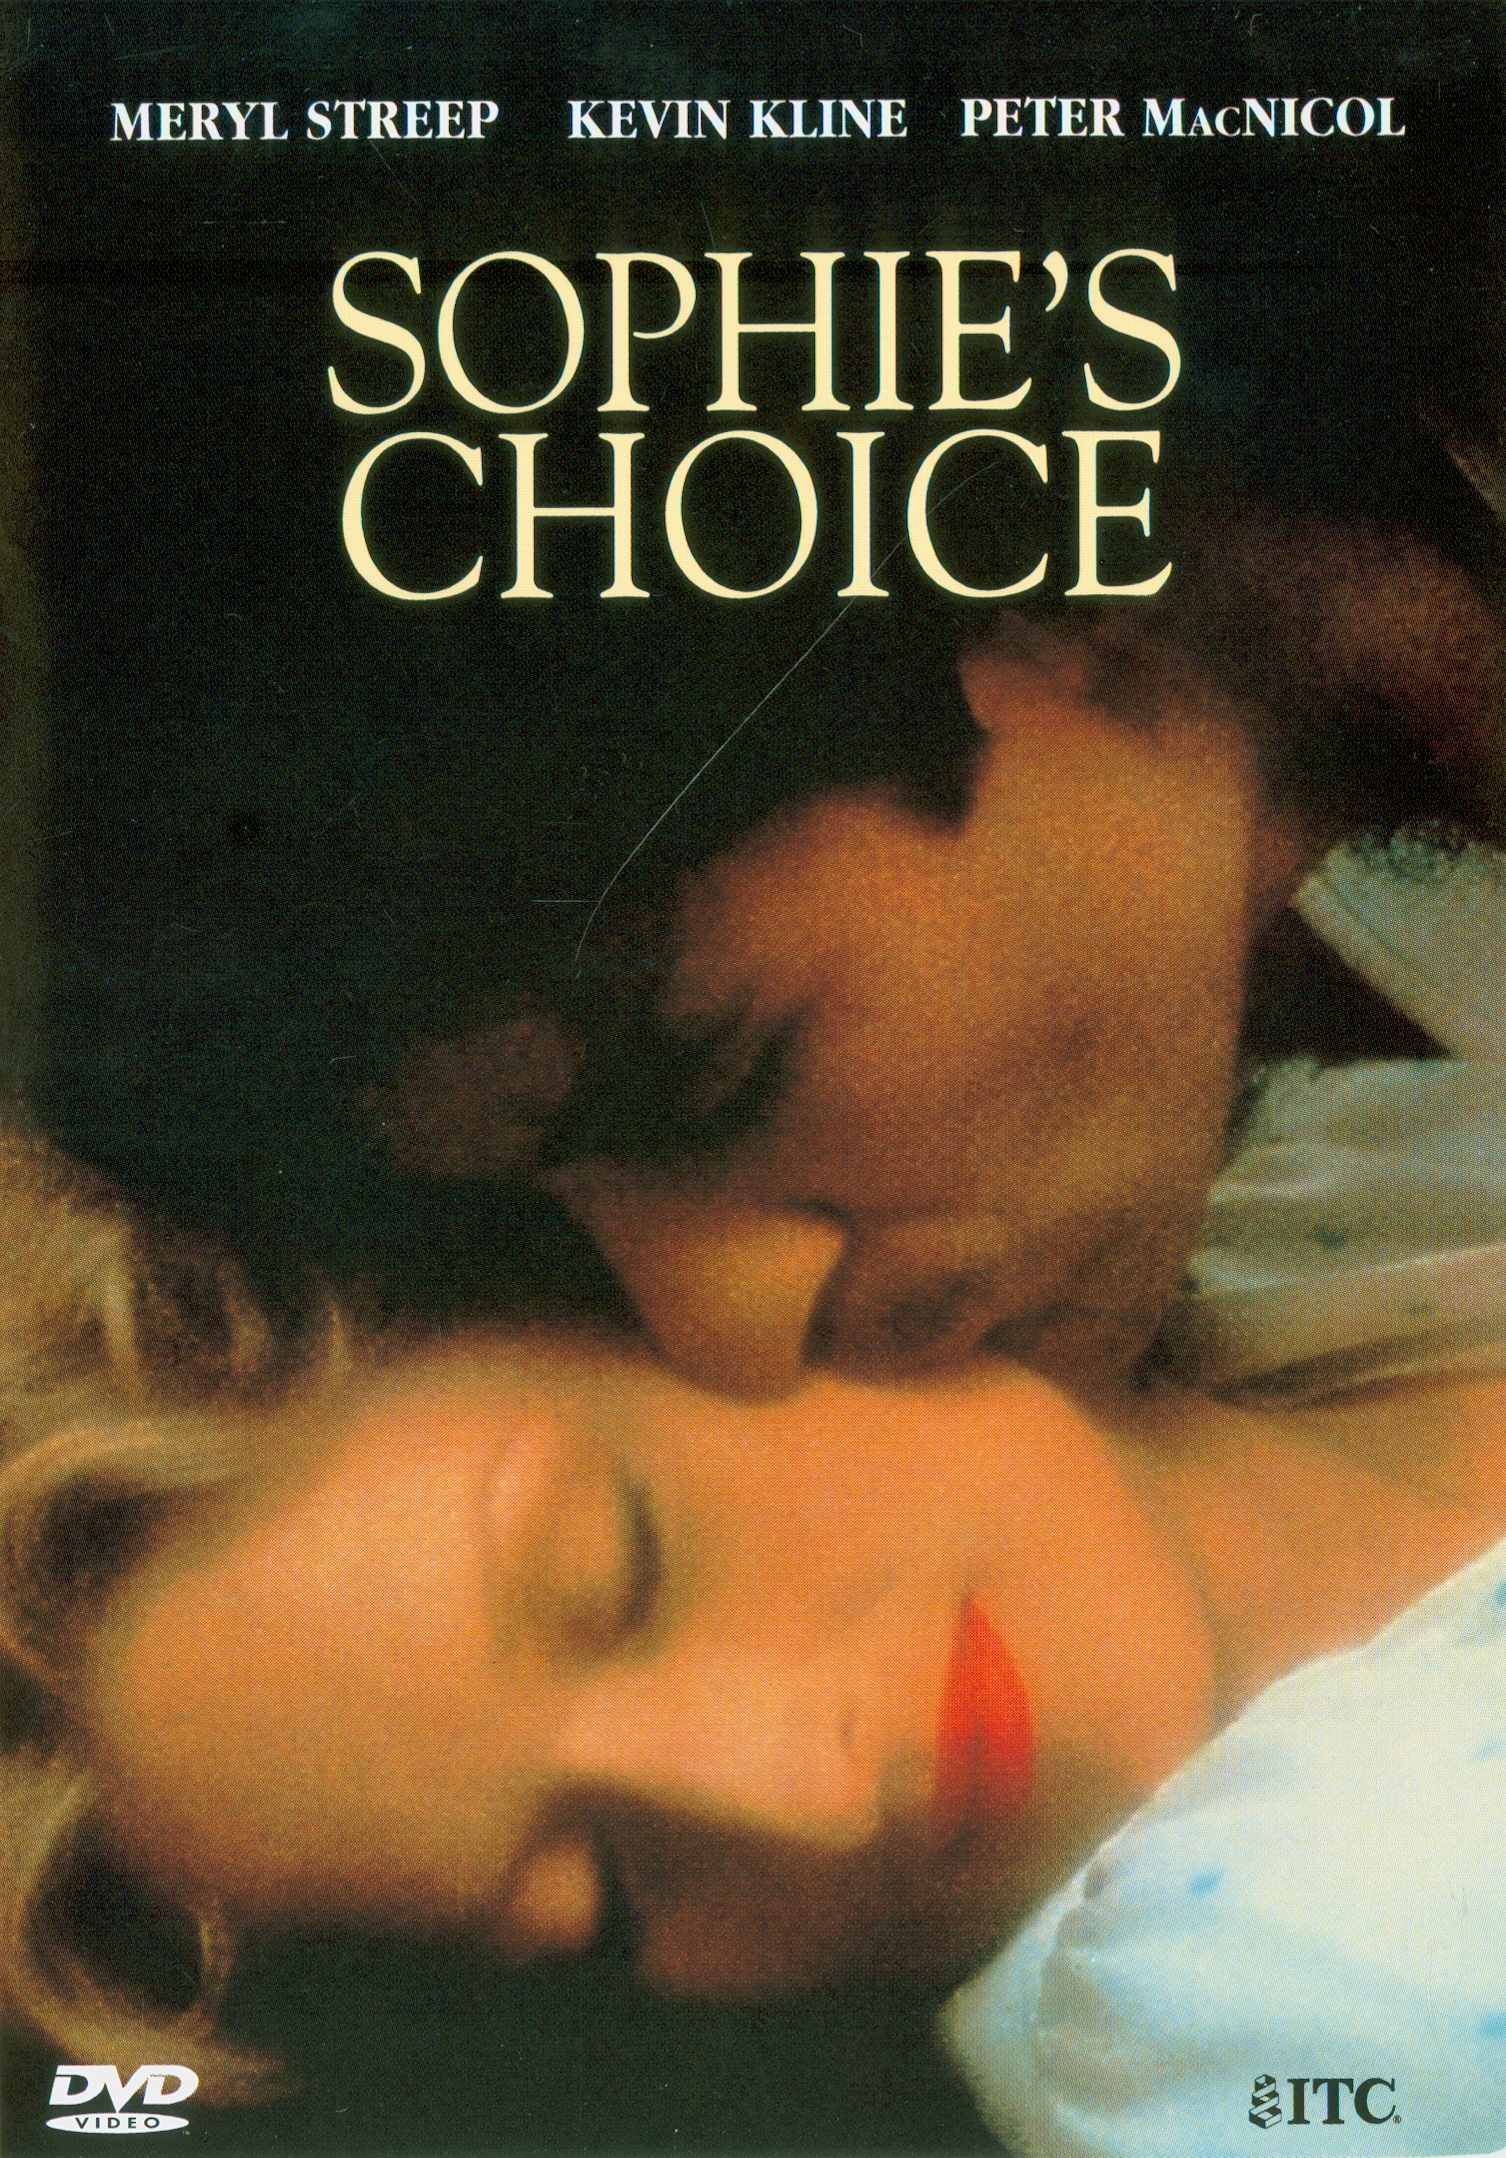 Sophie's choice[videorecording] /ITC Films, Inc. ; screenplay, Alan J. Pakula ; producers, Alan J. Pakula, Keith Barish ; director, Alan J. Pakula